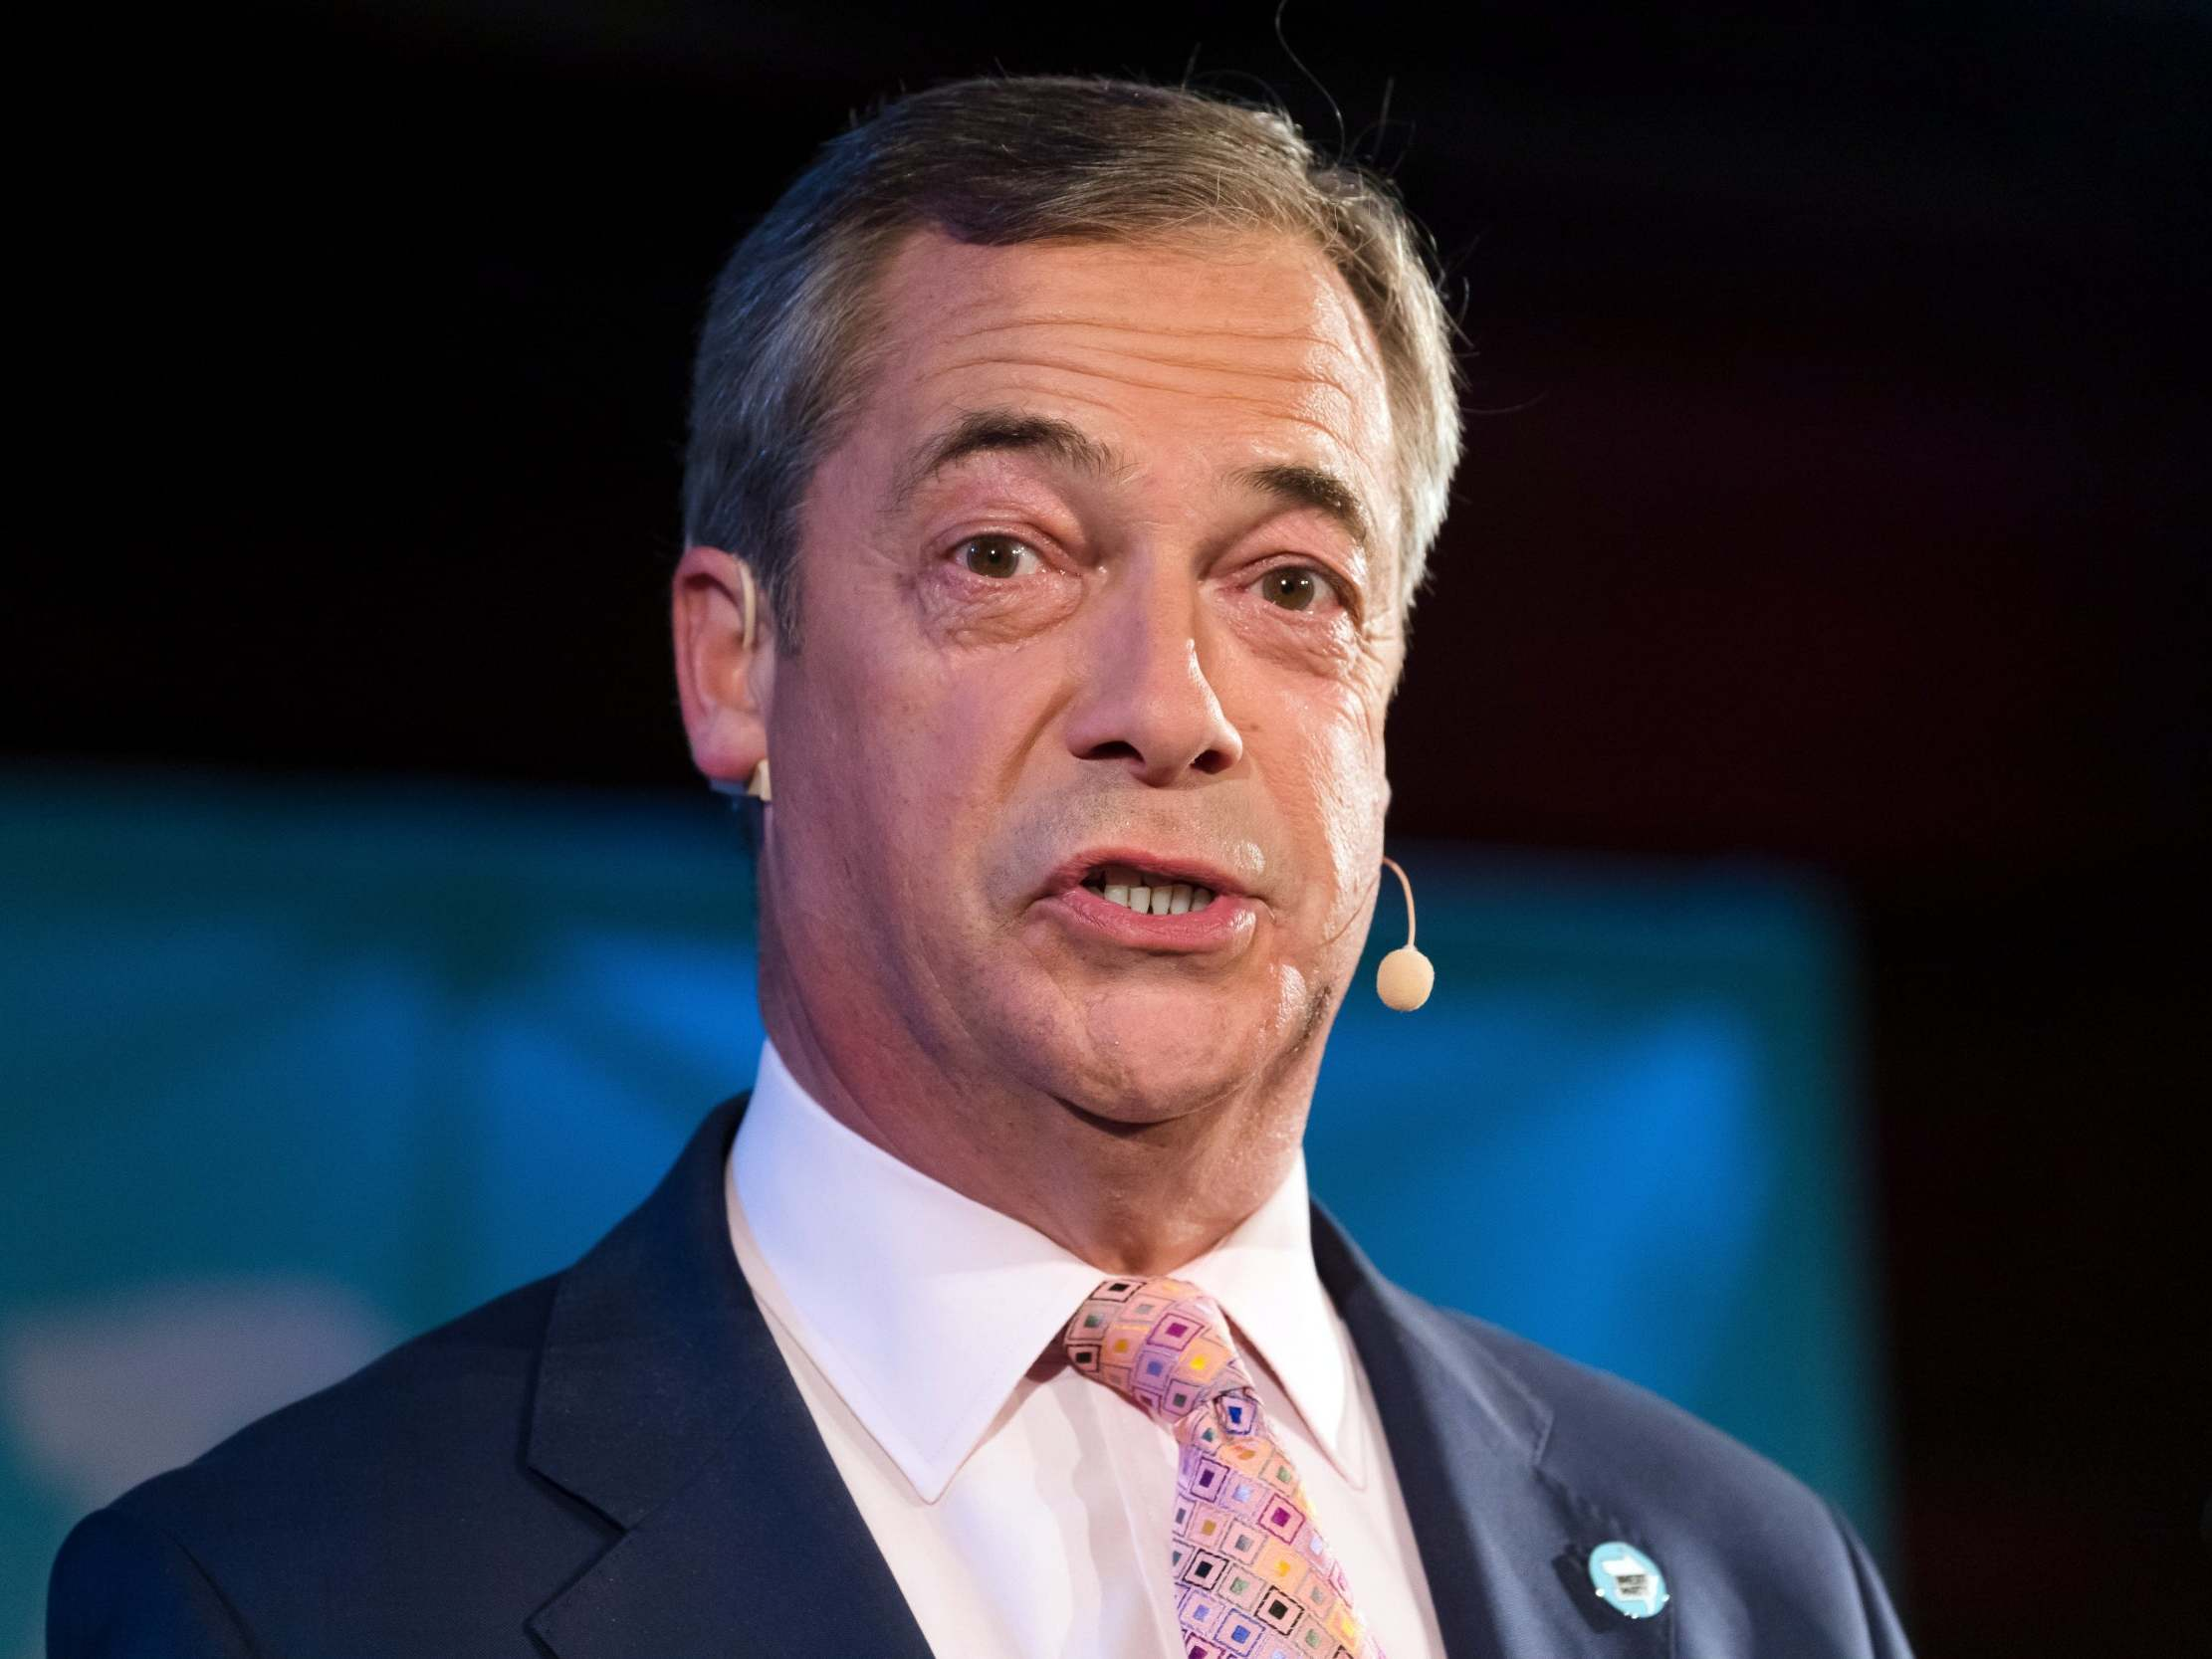 Nigel Farage mocked for Brexit U-turn after saying he would rather accept delay than new deal